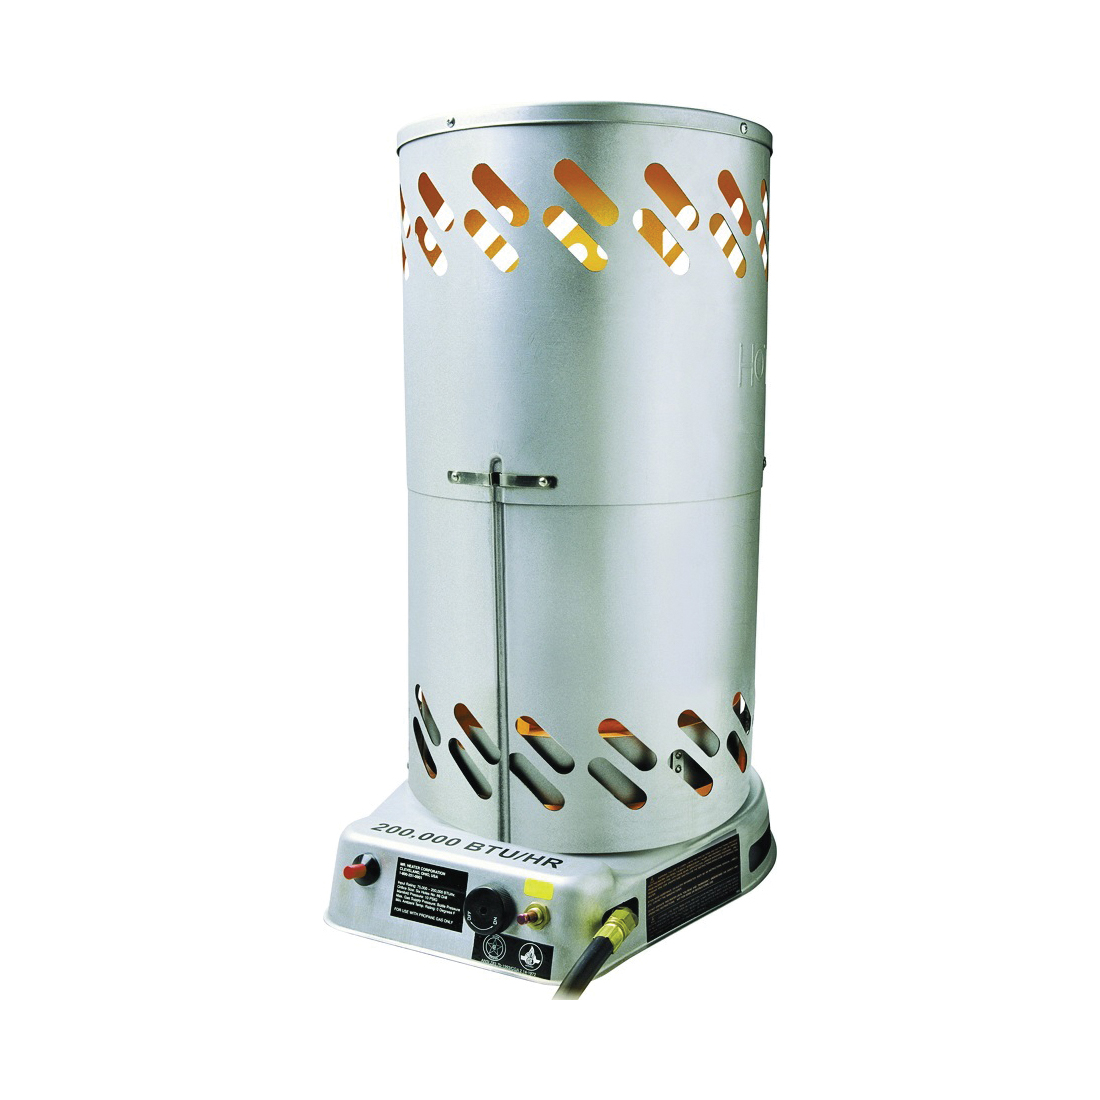 Picture of Mr. Heater F270500 Convection Heater, 100 lb Fuel Tank, Propane, 75000 to 200000 Btu, 5000 sq-ft Heating Area